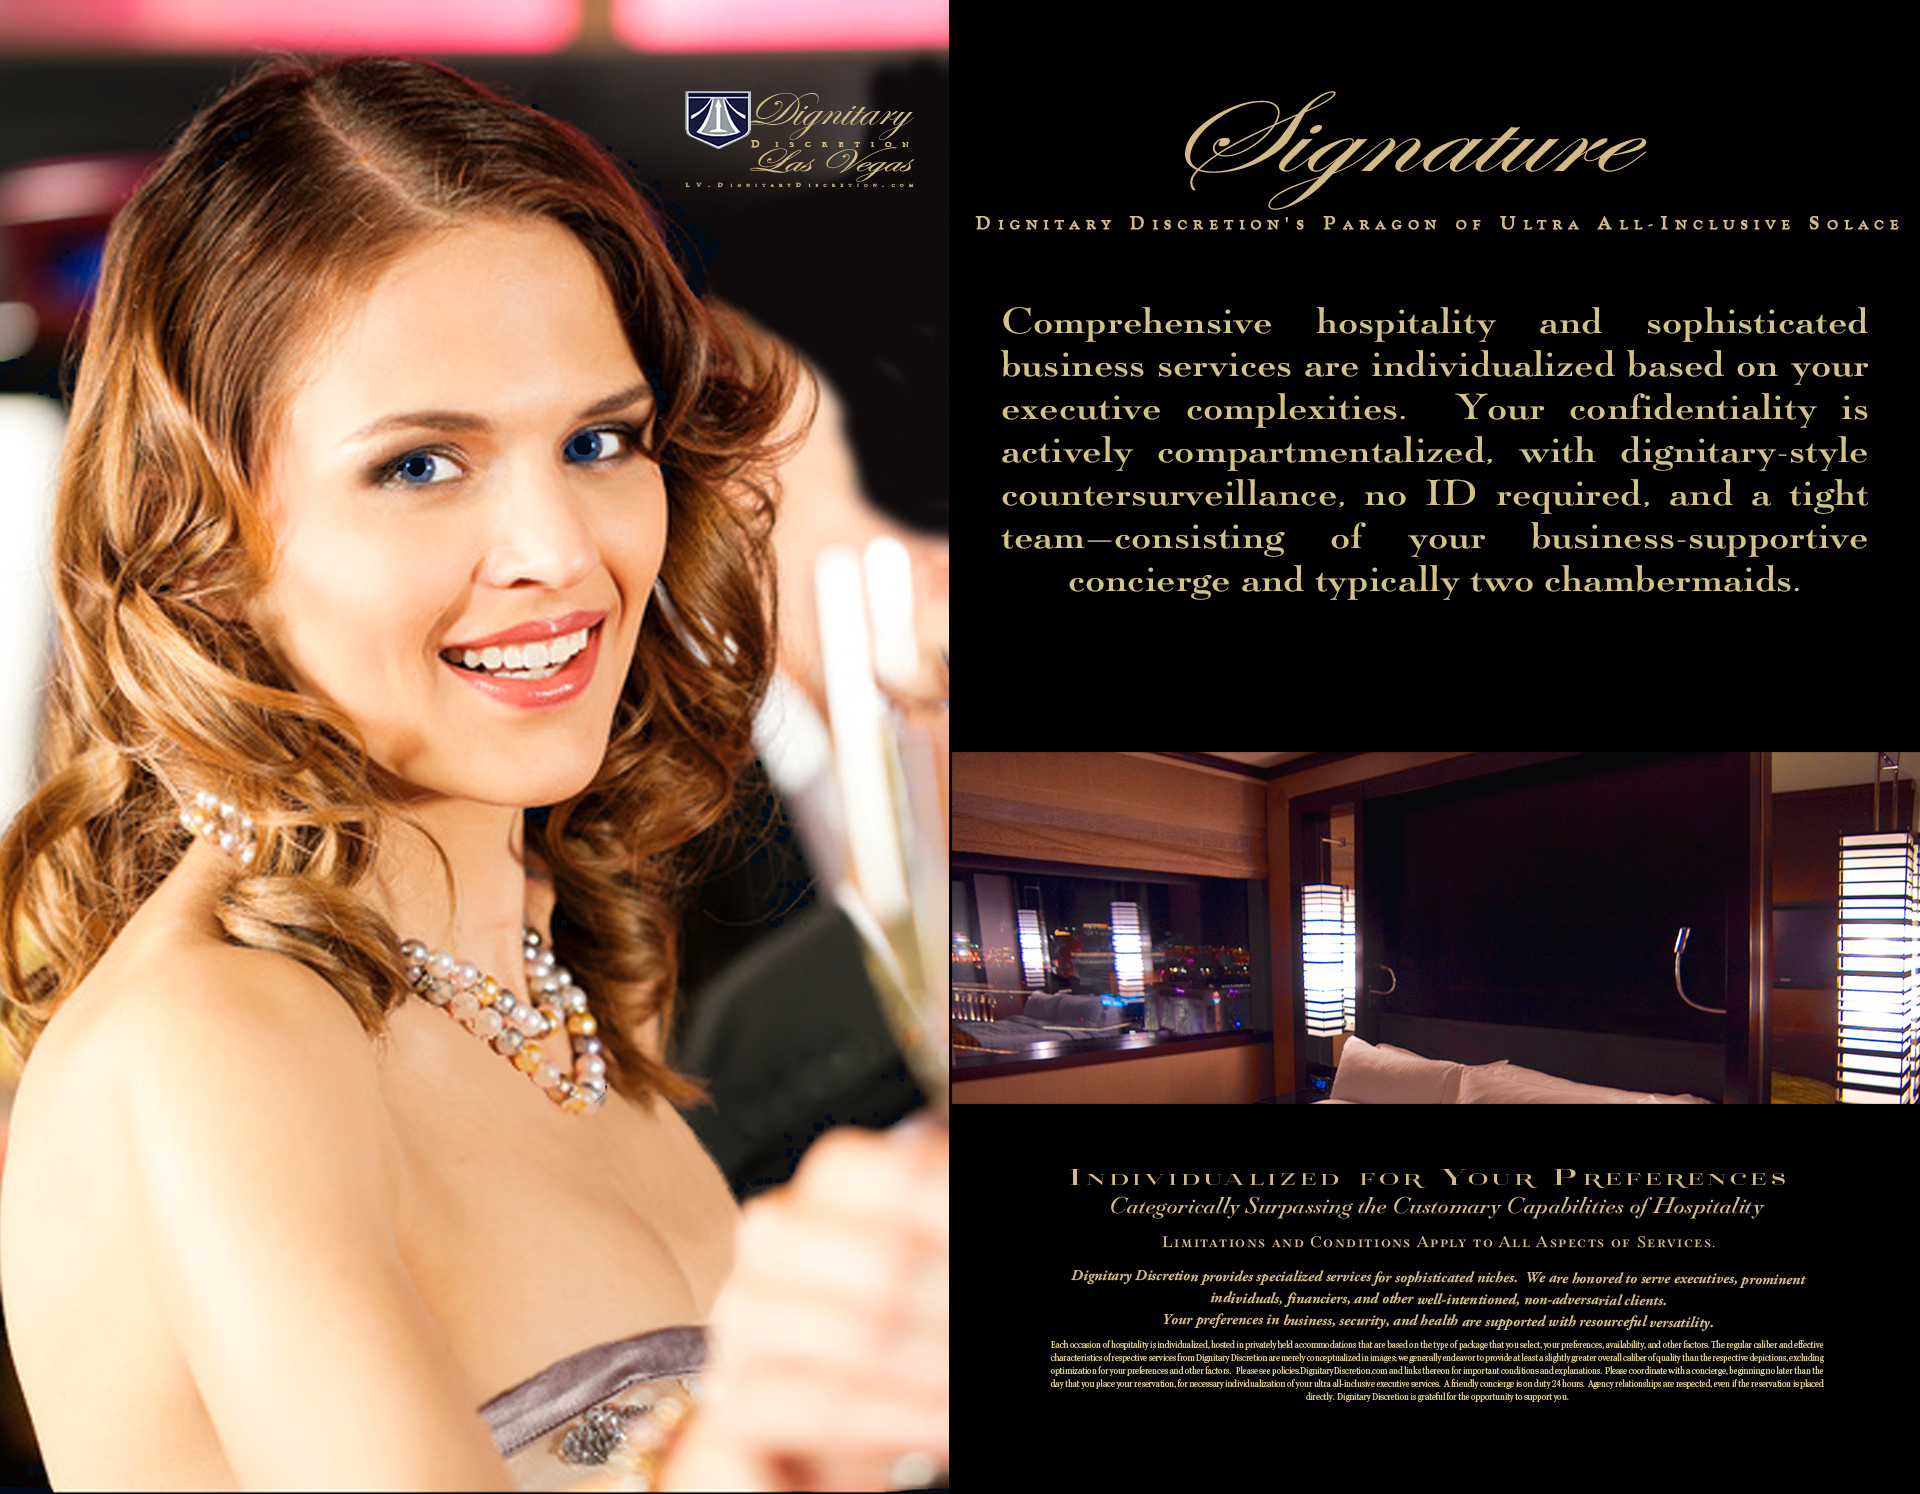 Dignitary Discretion Las Vegas Signature Package